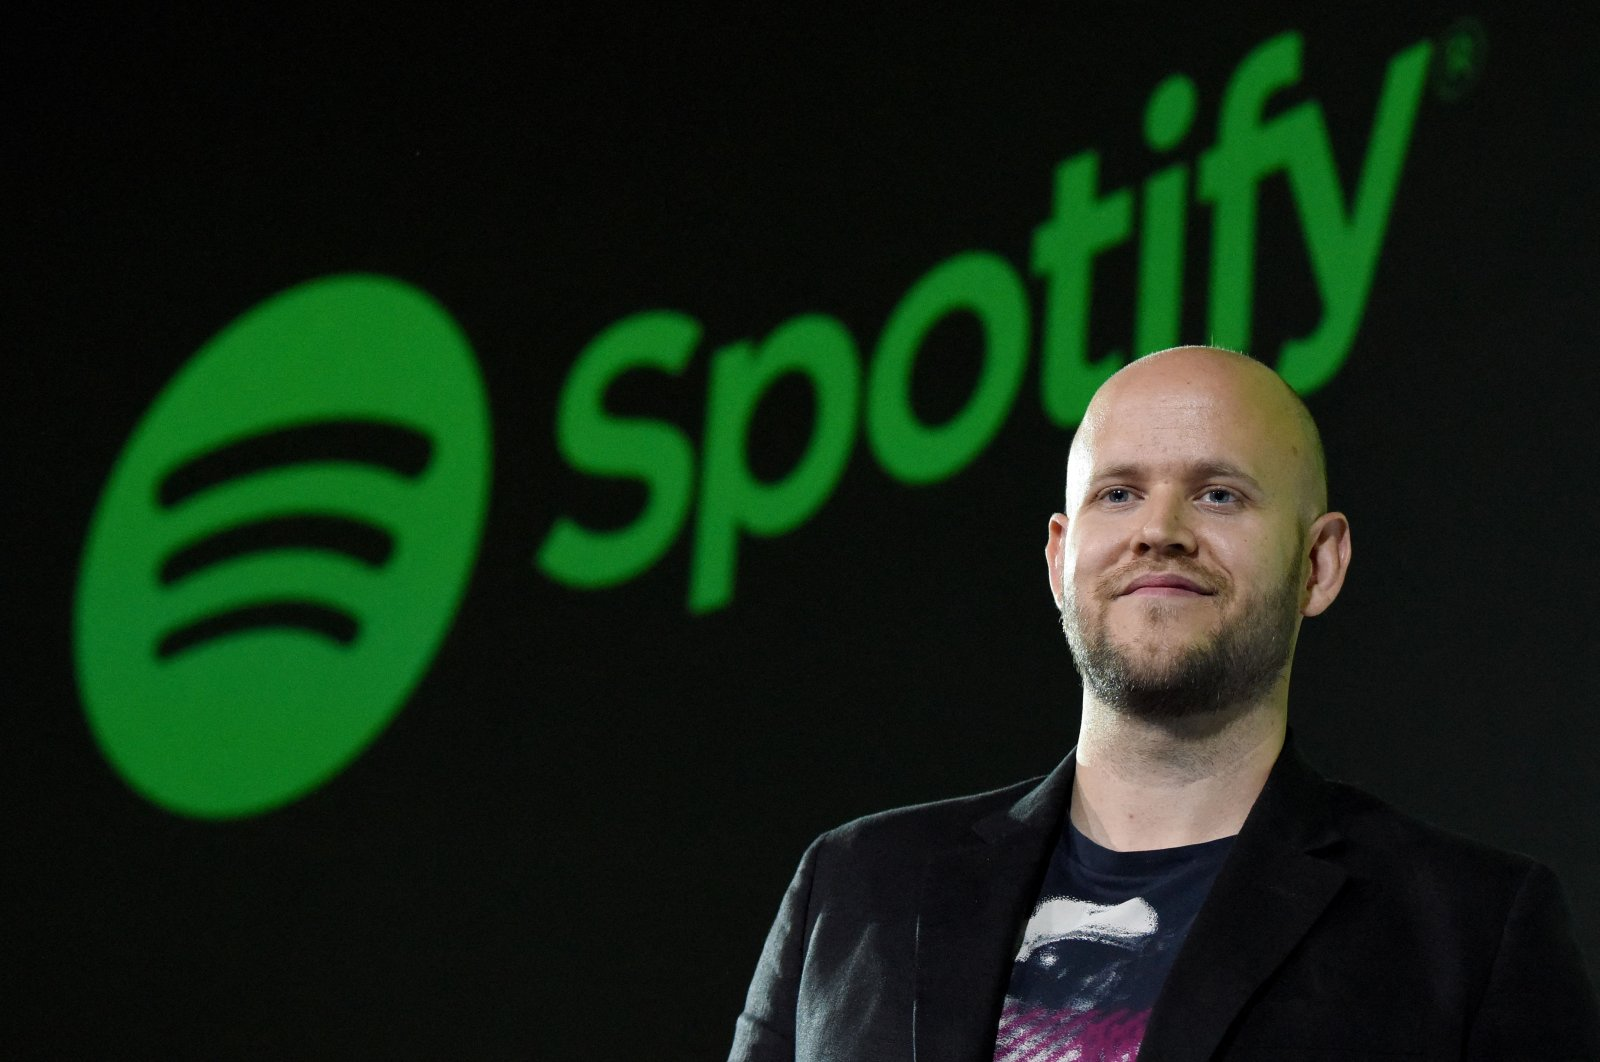 Daniel Ek, CEO of Swedish music streaming service Spotify, poses for photographers at a press conference in Tokyo, Japan, Sept. 29, 2016.  (AFP Photo)